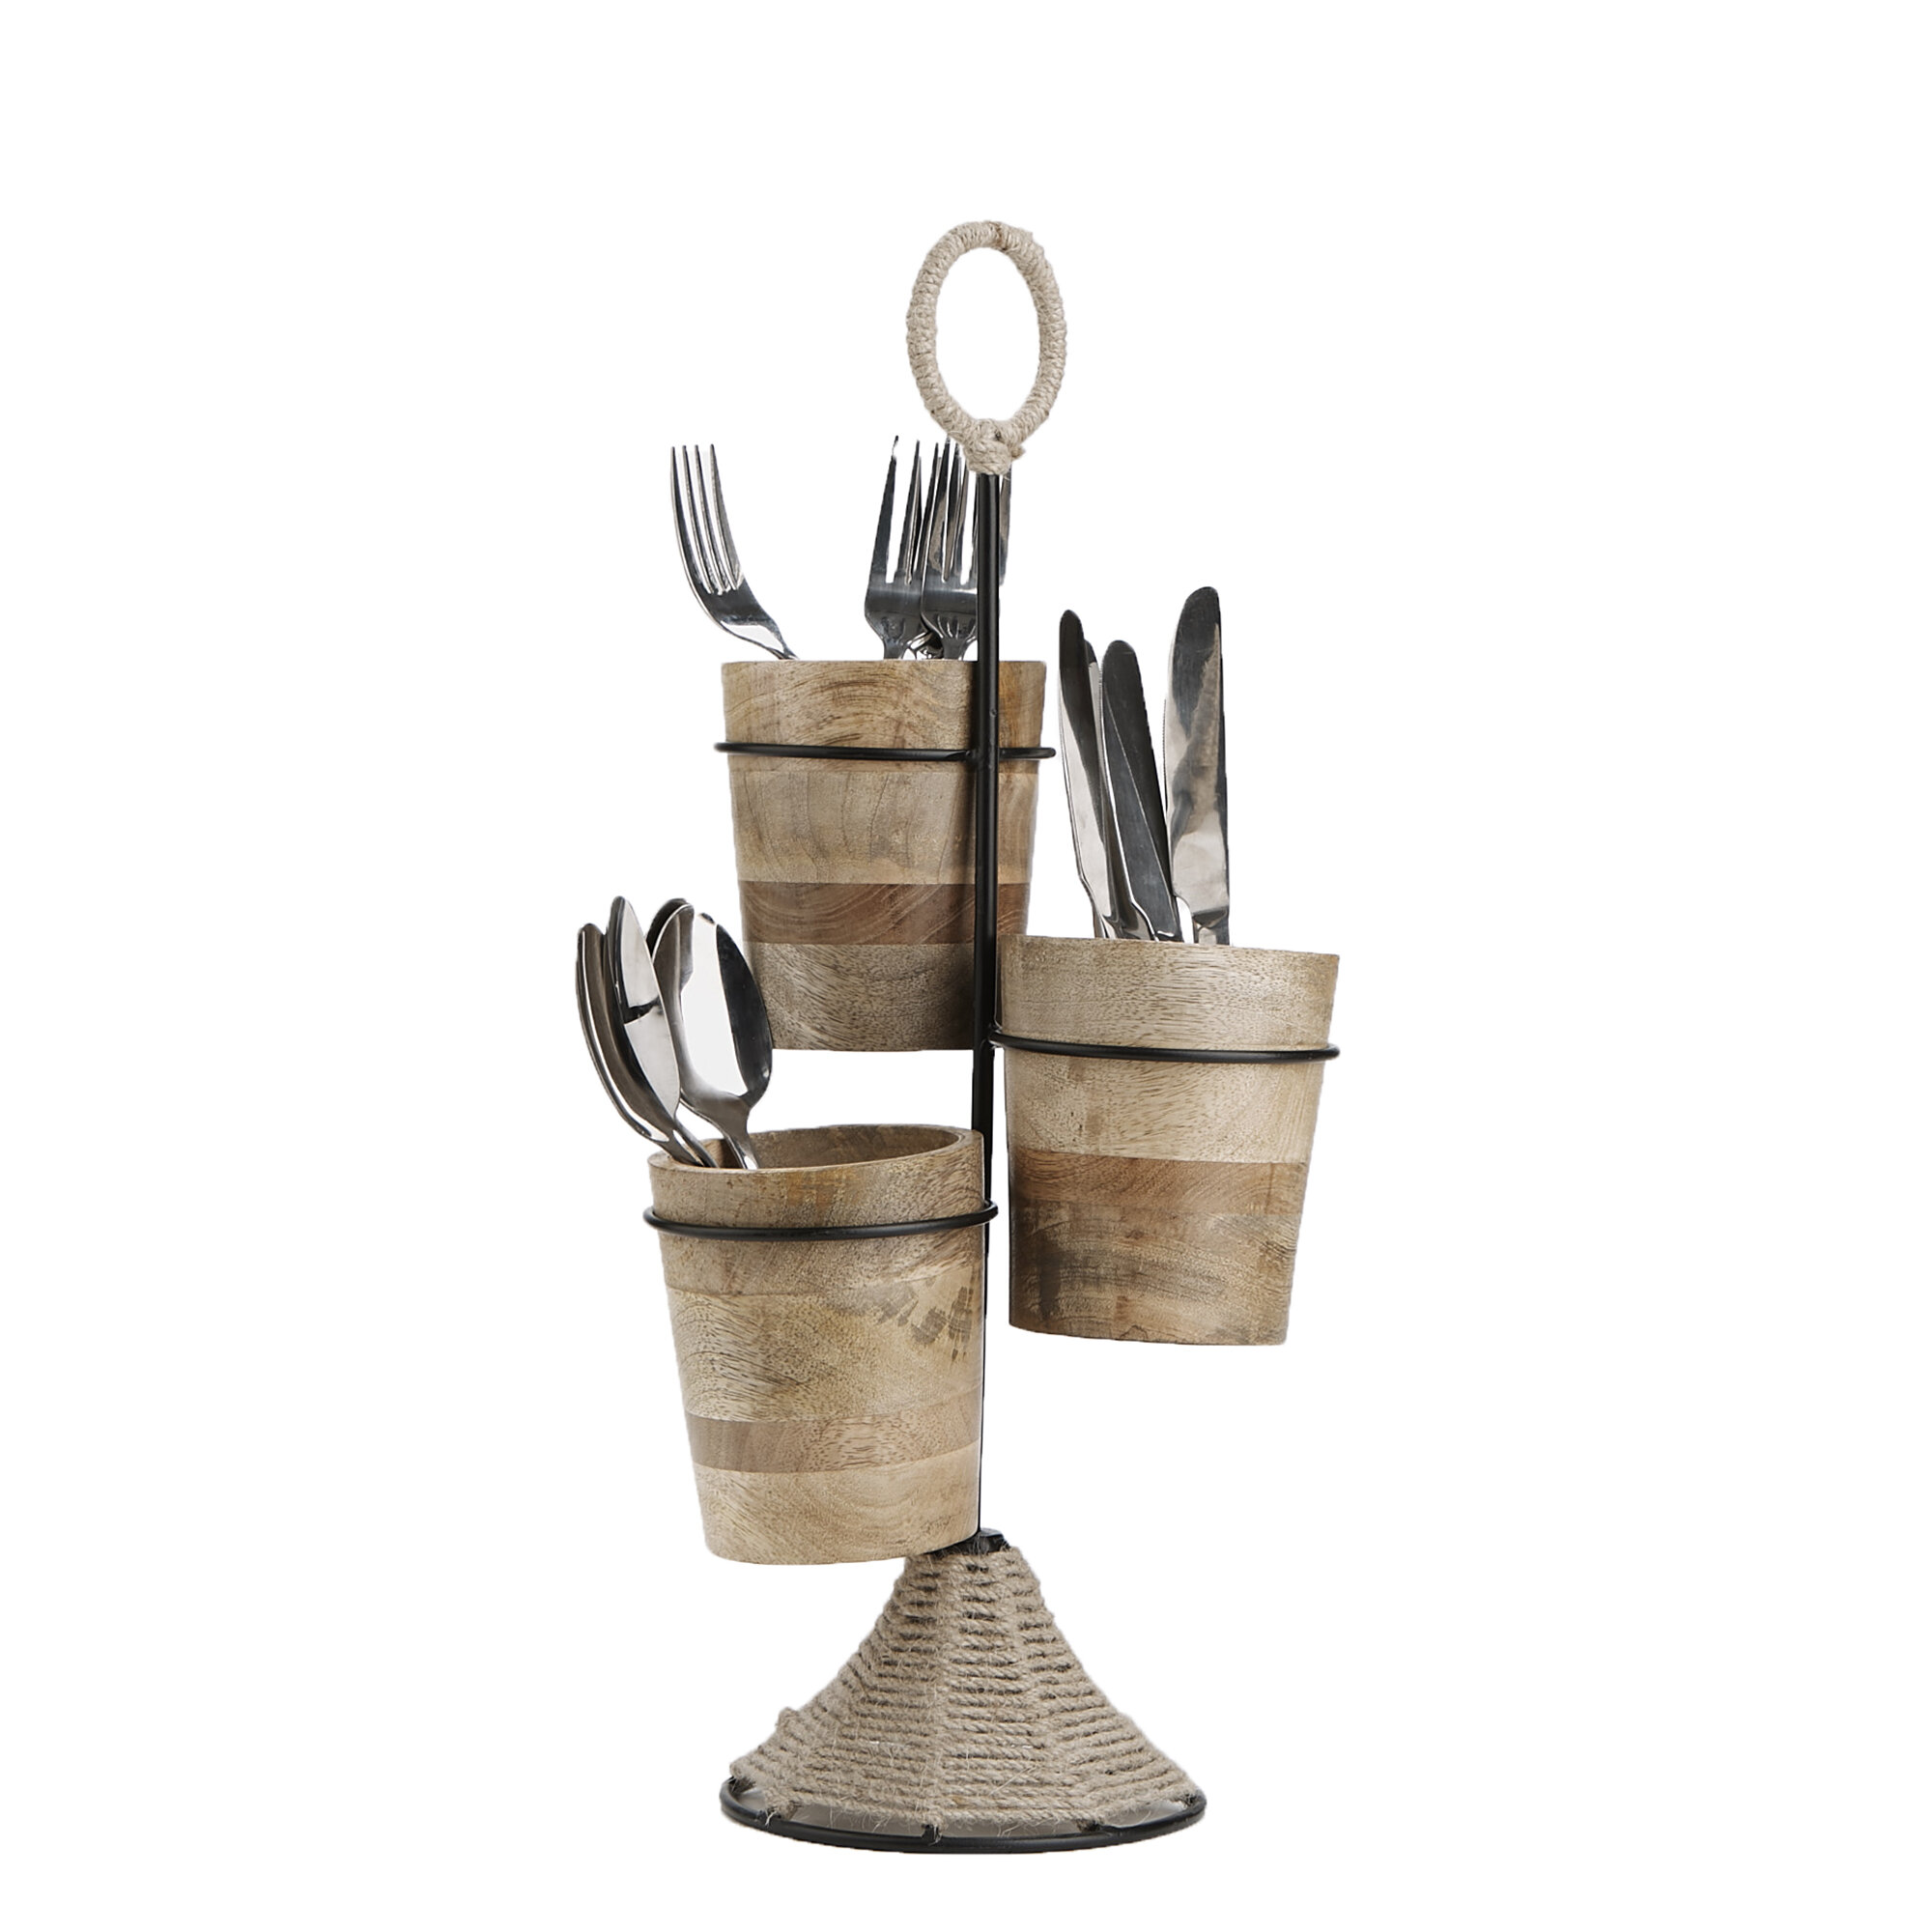 Wood and Rope Utensil Flatware Caddy